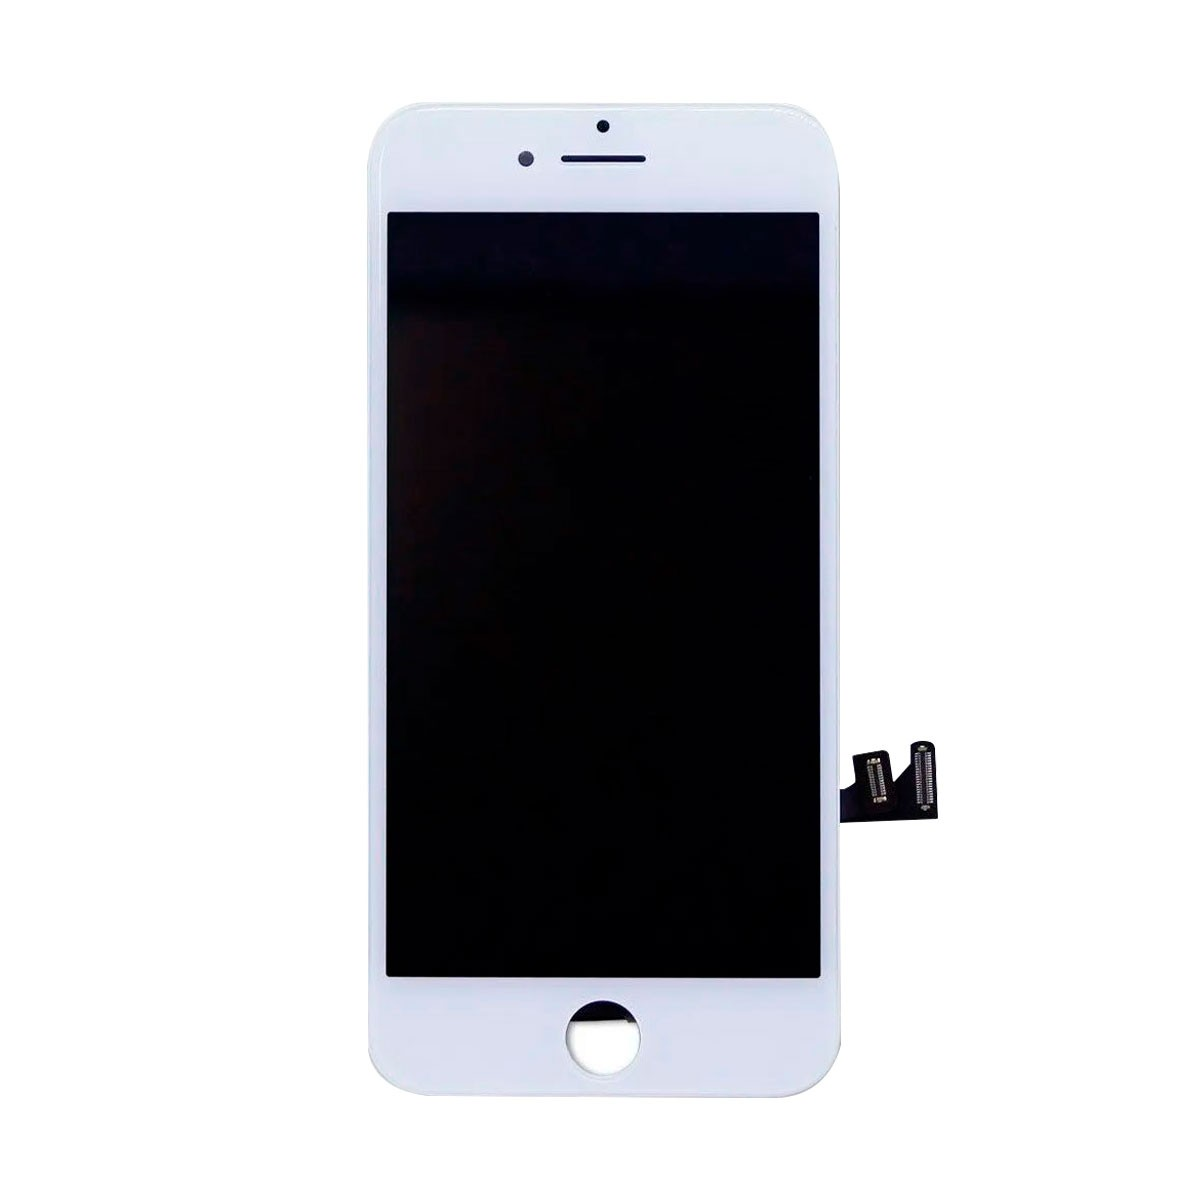 Tela Touch Display LCD Frontal - iPhone 8 8G - 4.7 - AAA++